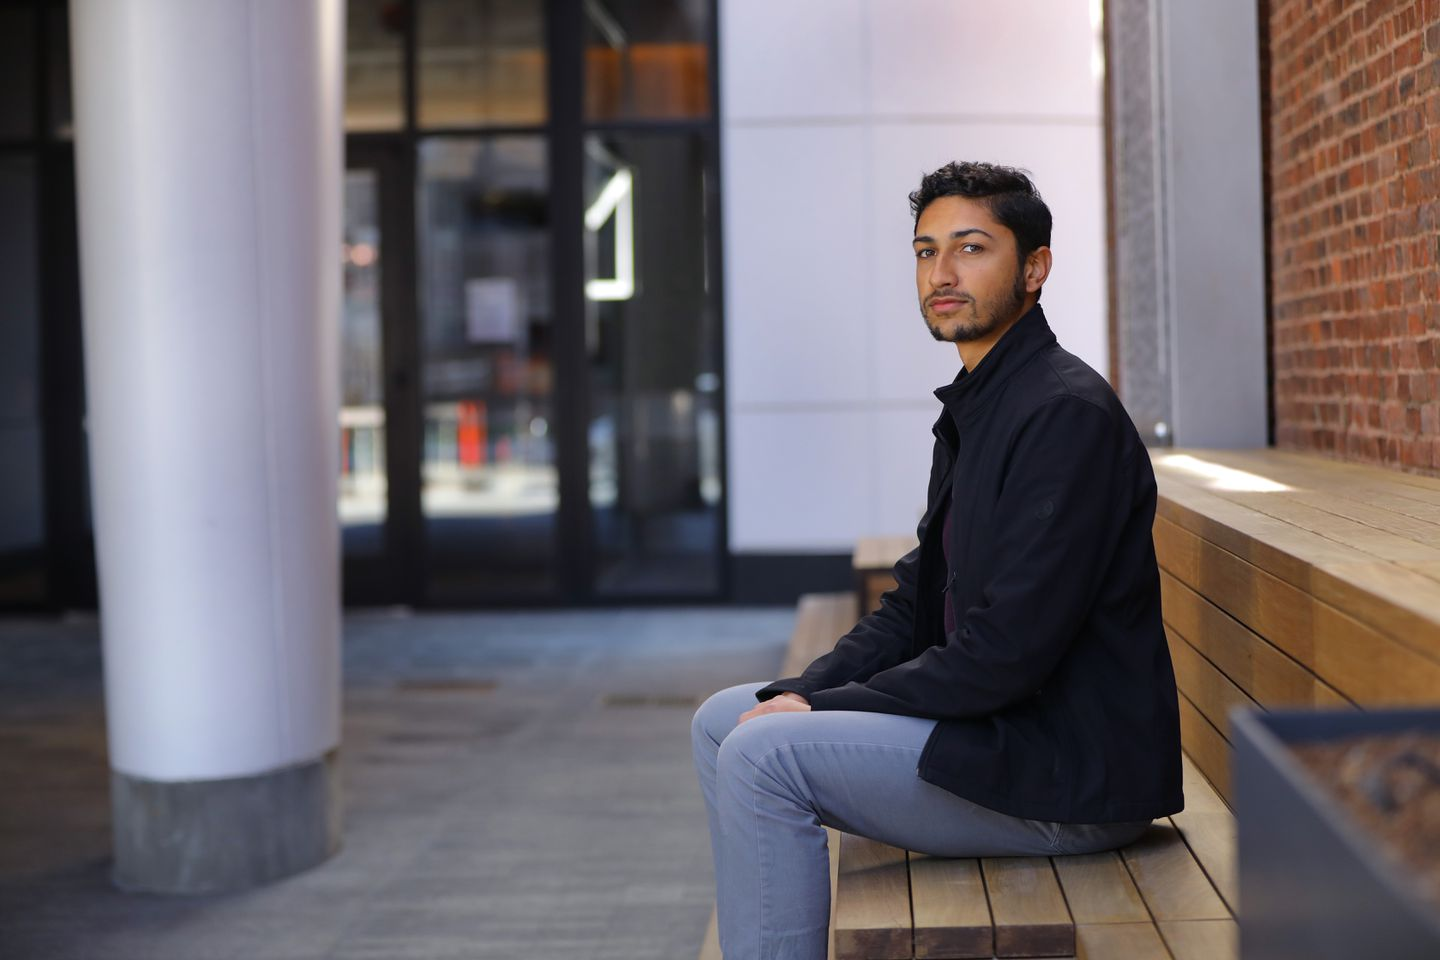 Brennan Balasubramaniam, a Northeastern senior, is unhappy about having to pay rent through mid-August now that there is little chance for him to sublease his apartment.